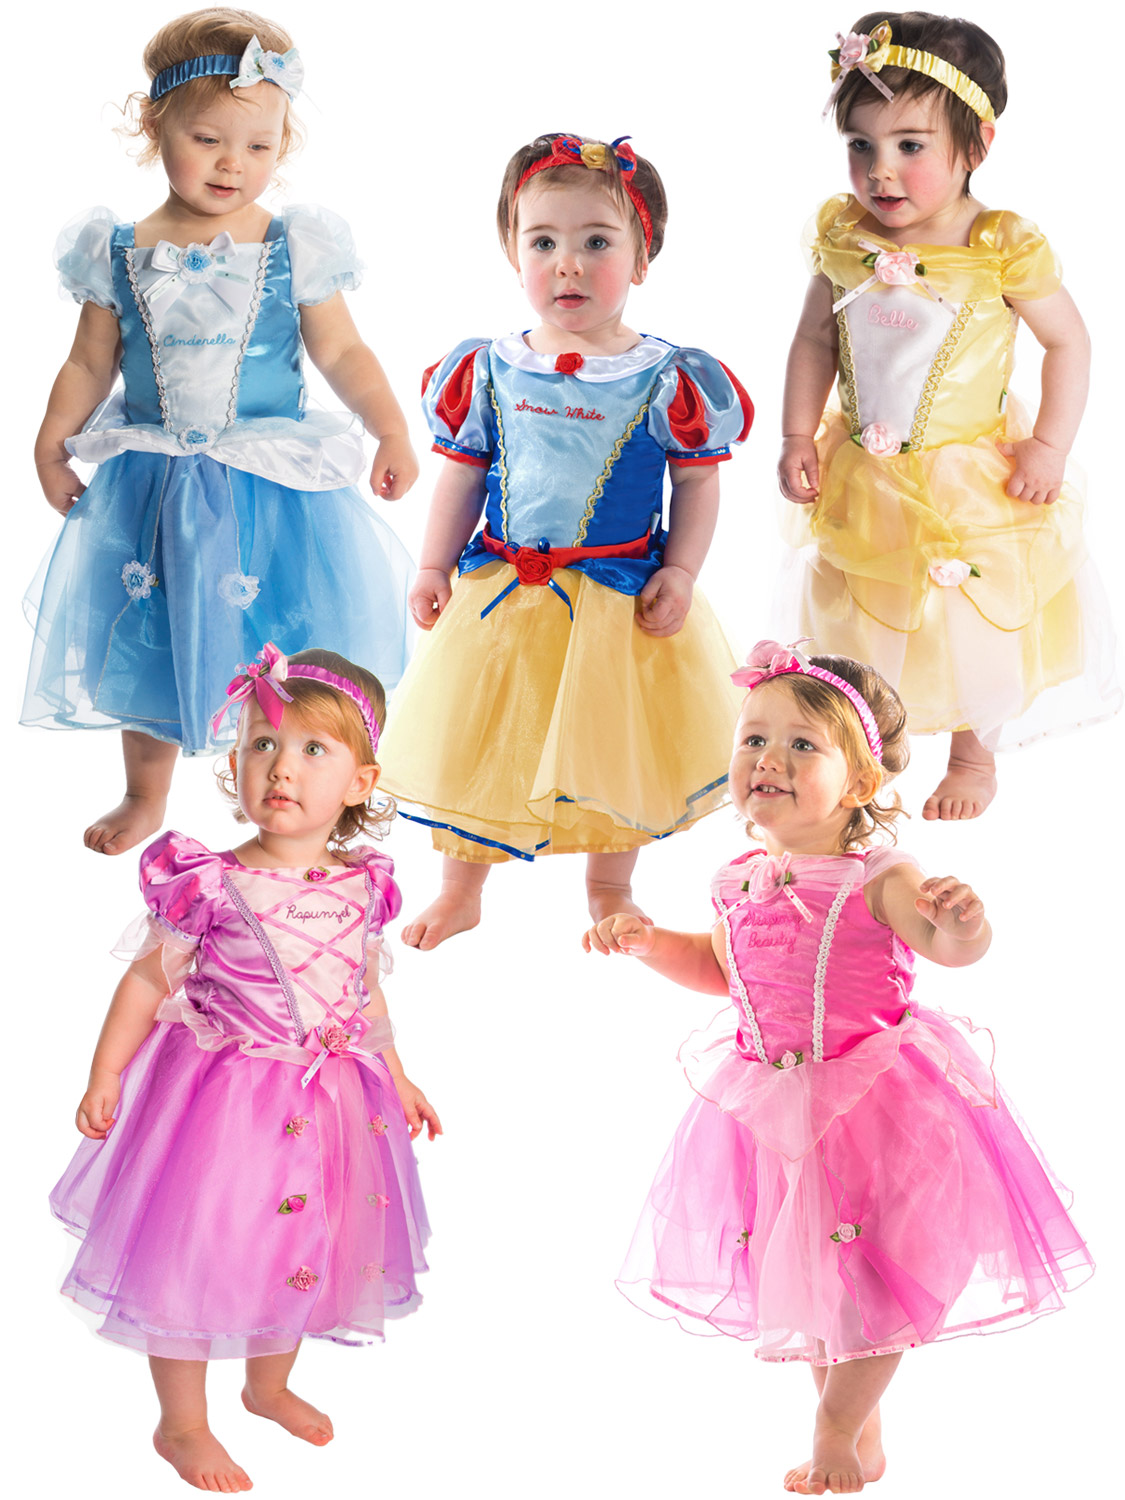 Details about Deluxe Disney Princess Costume Baby Toddler Girl Fancy Dress  Up Outfit Book Day